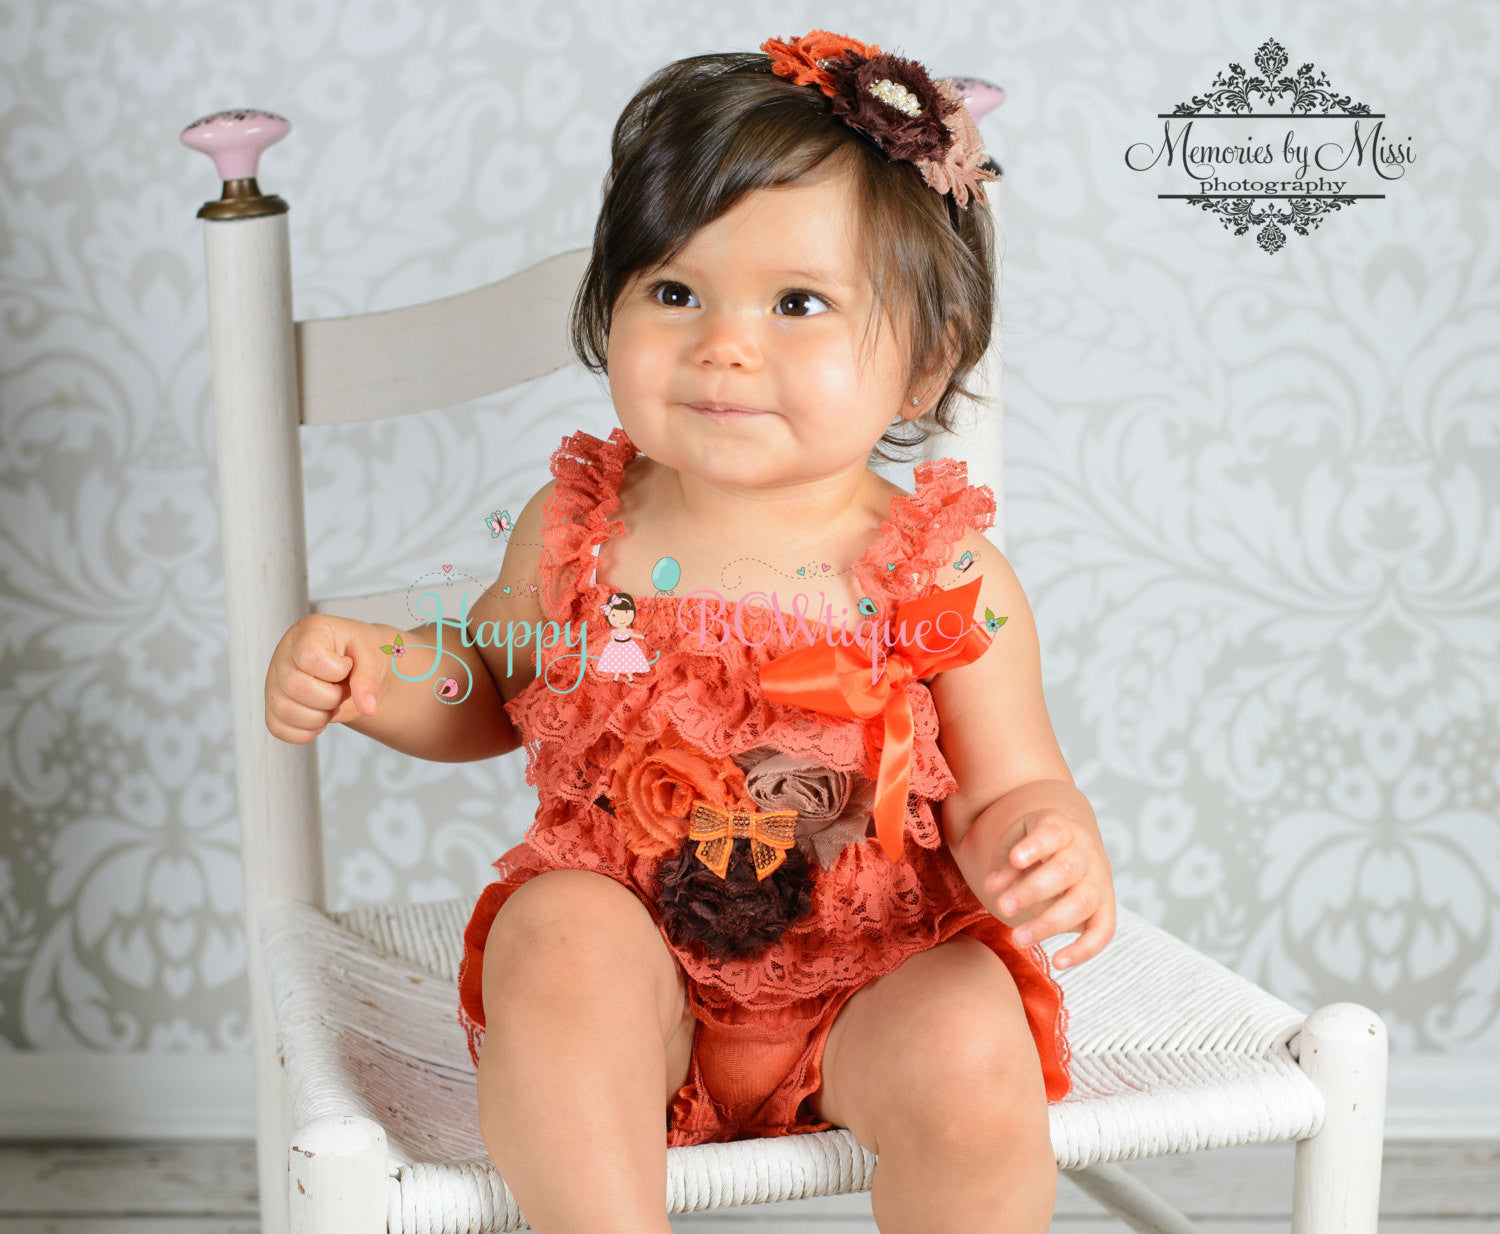 Fall Orange Romper set - Happy BOWtique - children's clothing, Baby Girl clothing